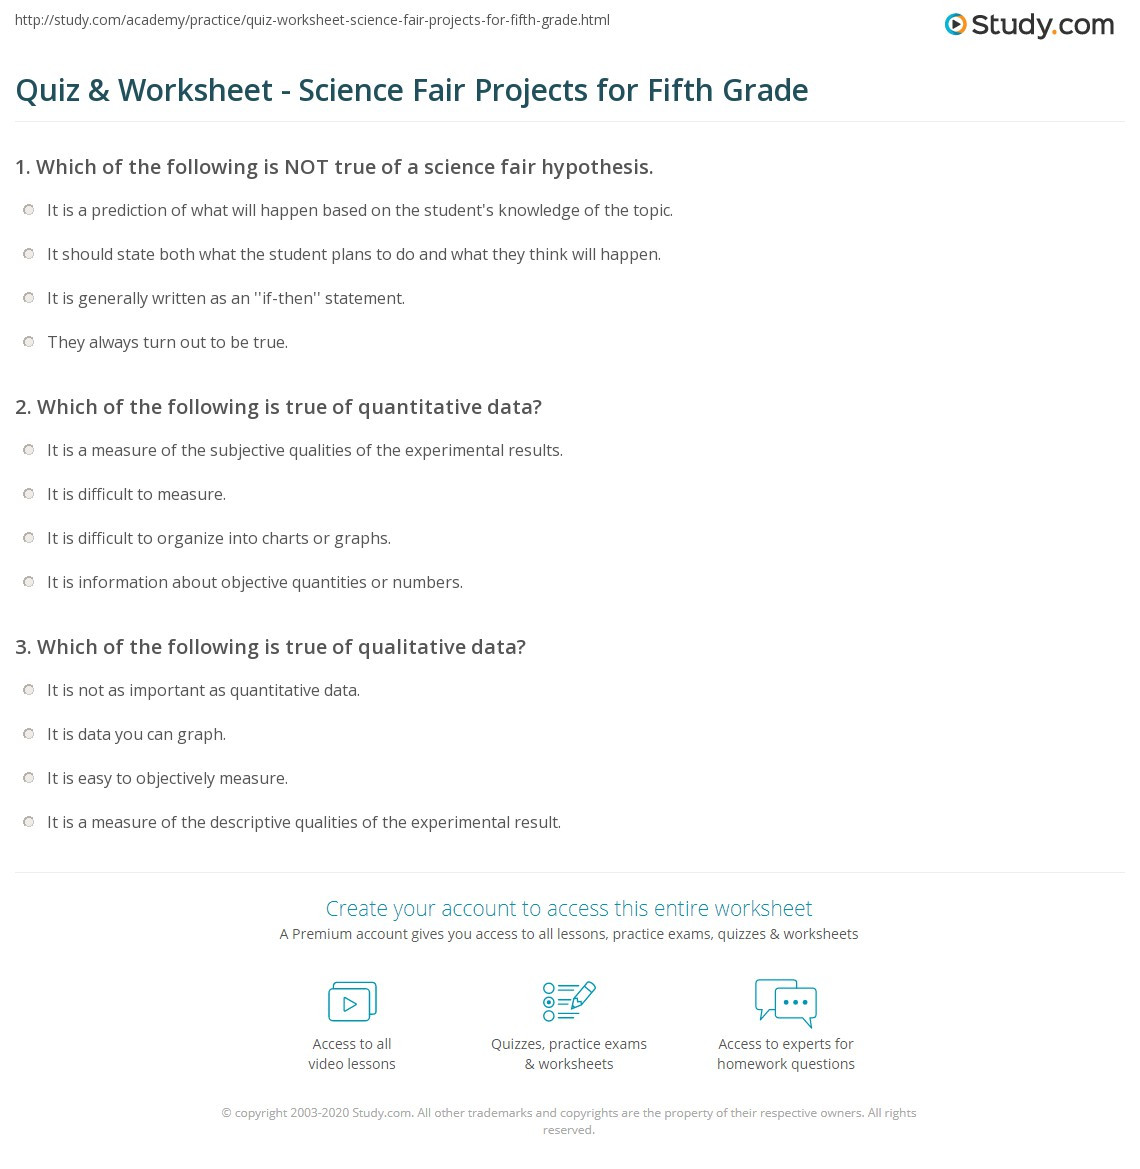 Scientific Method Worksheet 5th Grade Quiz & Worksheet Science Fair Projects for Fifth Grade